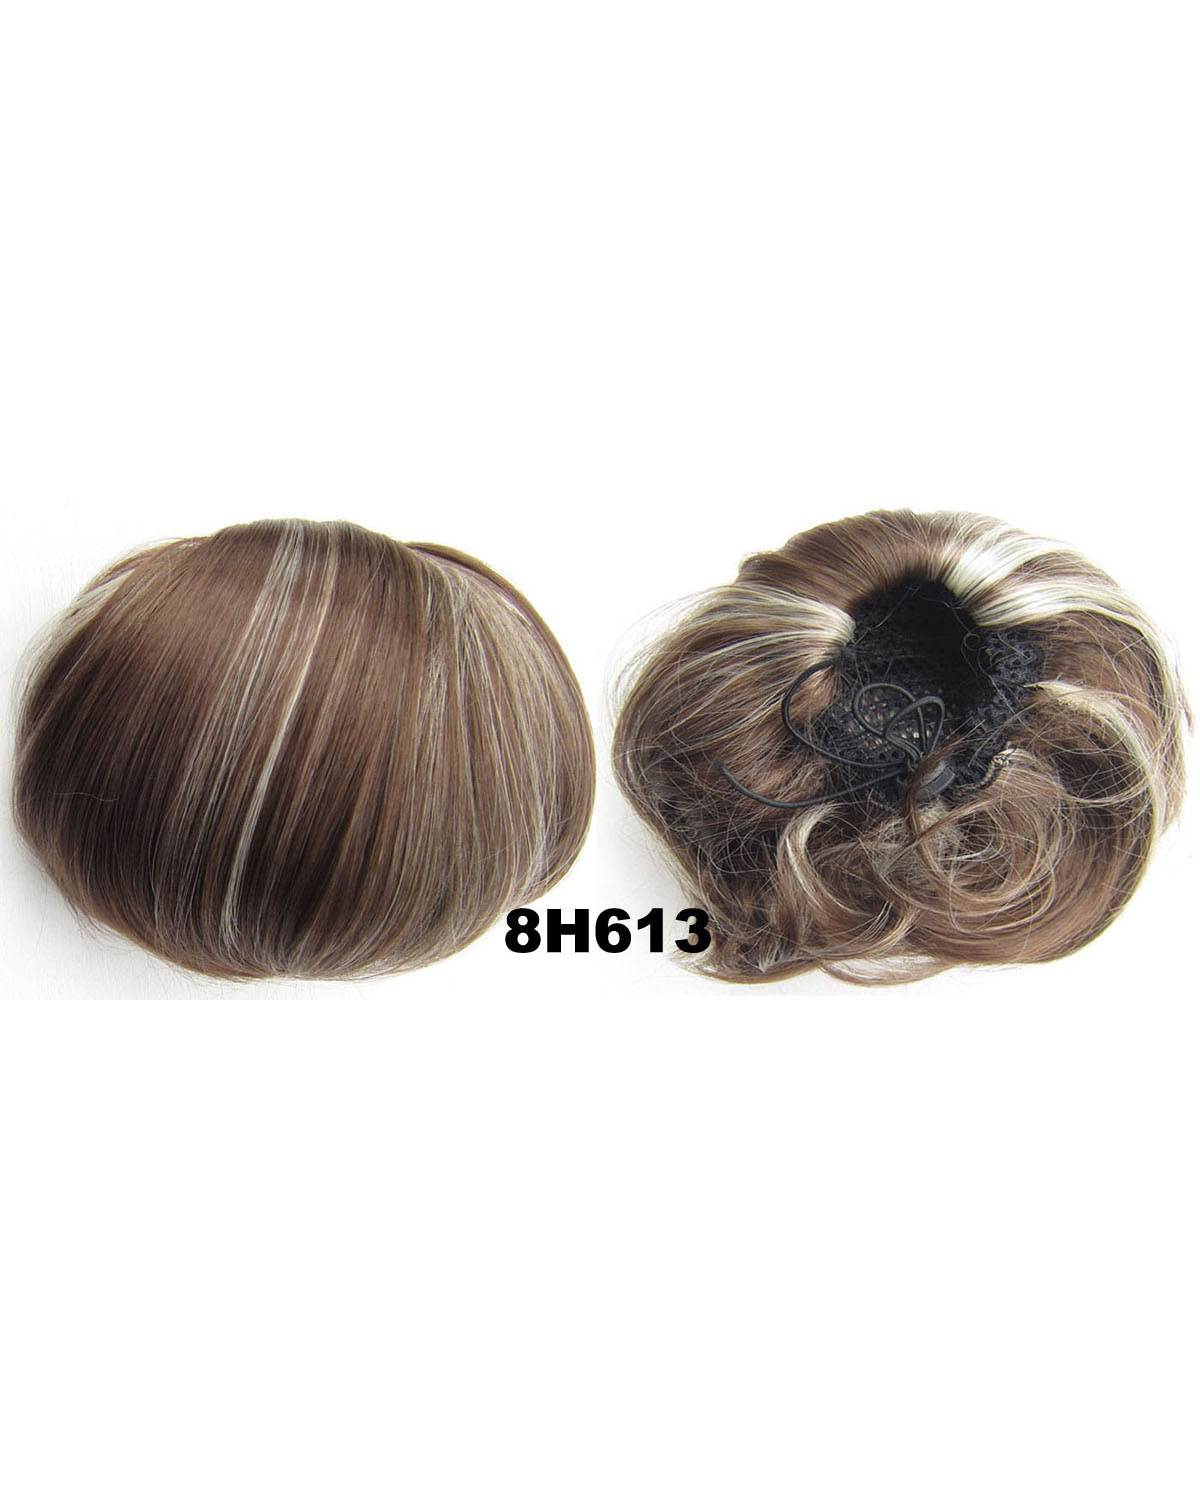 Ladies Modernish Straight Short Hair Buns Drawstring Synthetic Hair Extension Bride Scrunchies8H613